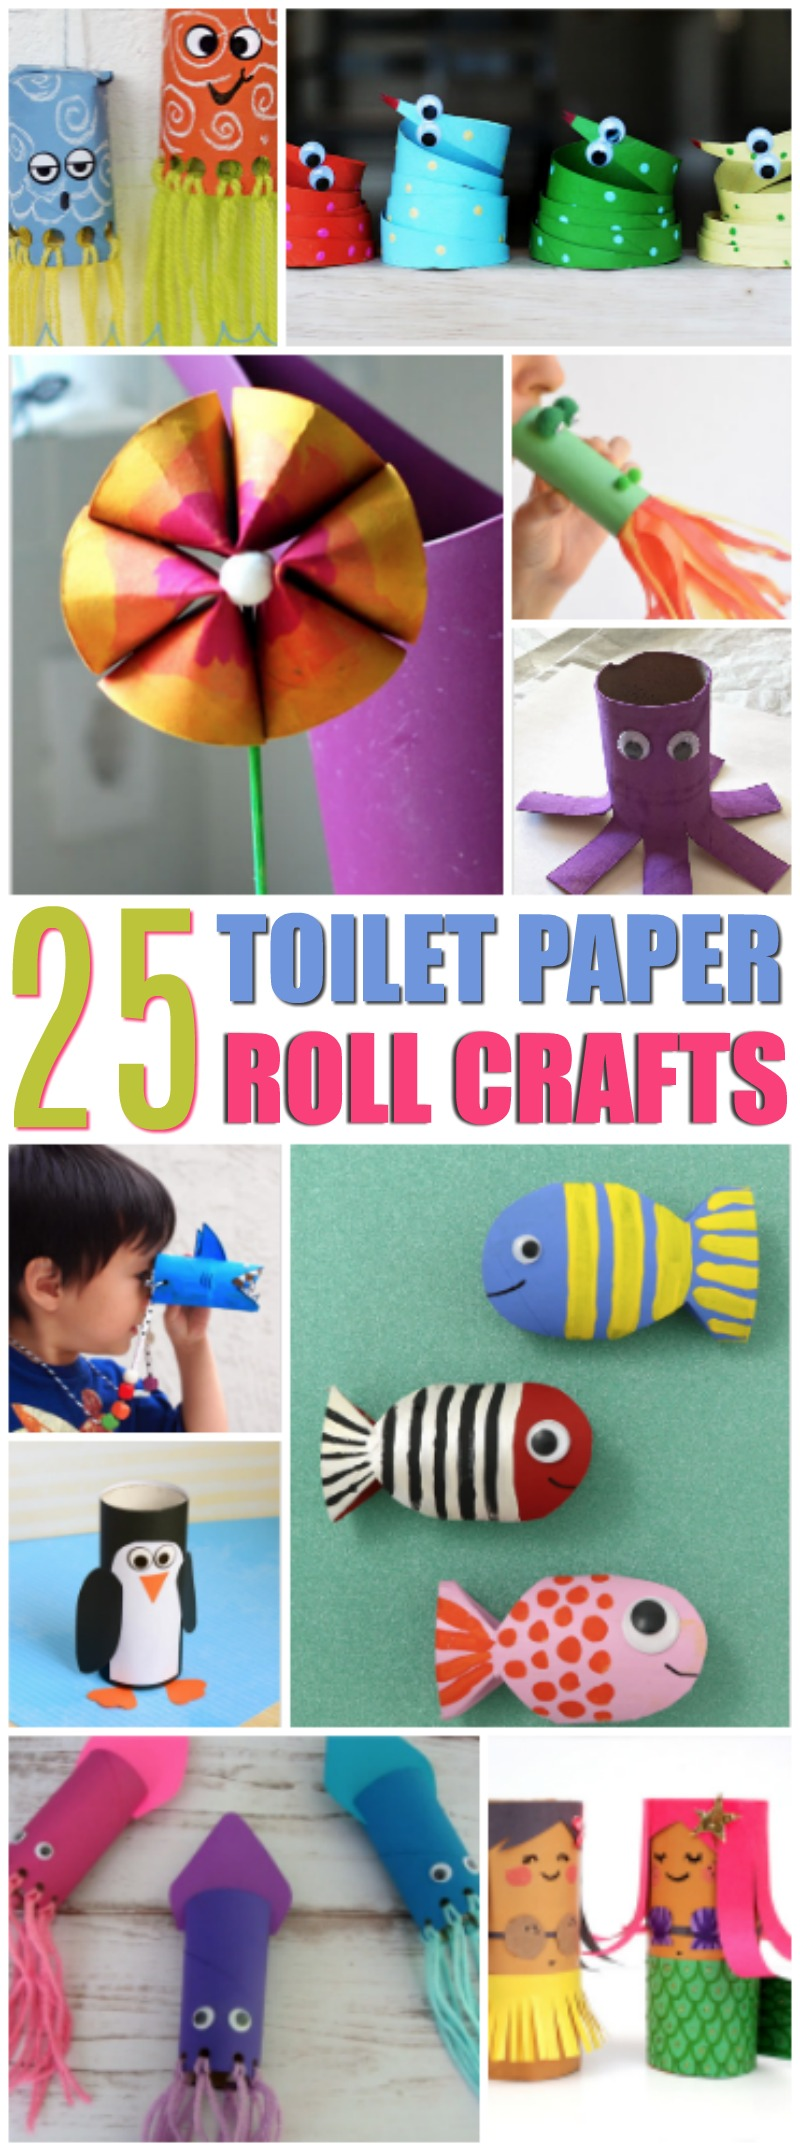 I Hope You Enjoy These Super Fun Kid Friendly Toilet Paper Roll Craft Ideas